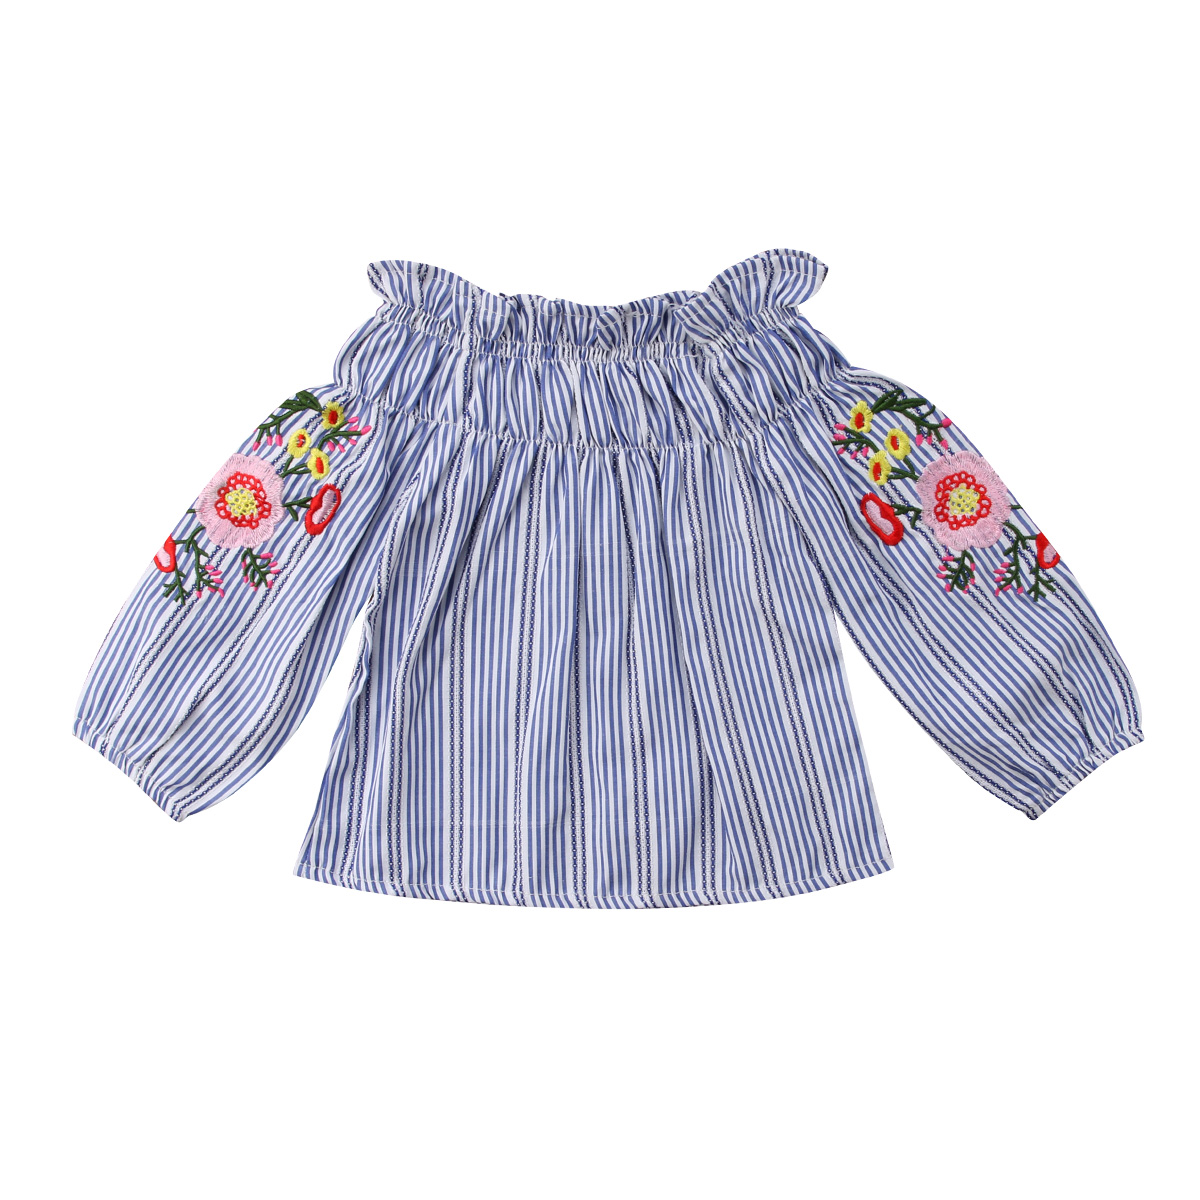 Toddler Baby Kid Girl Clothing Stripe Floral Embroider Off-Shoulder T-shirt Casual Summer Long Sleeve Tops Clothes Girls 1-7T trendy see through off the shoulder long sleeve lace blouse for women